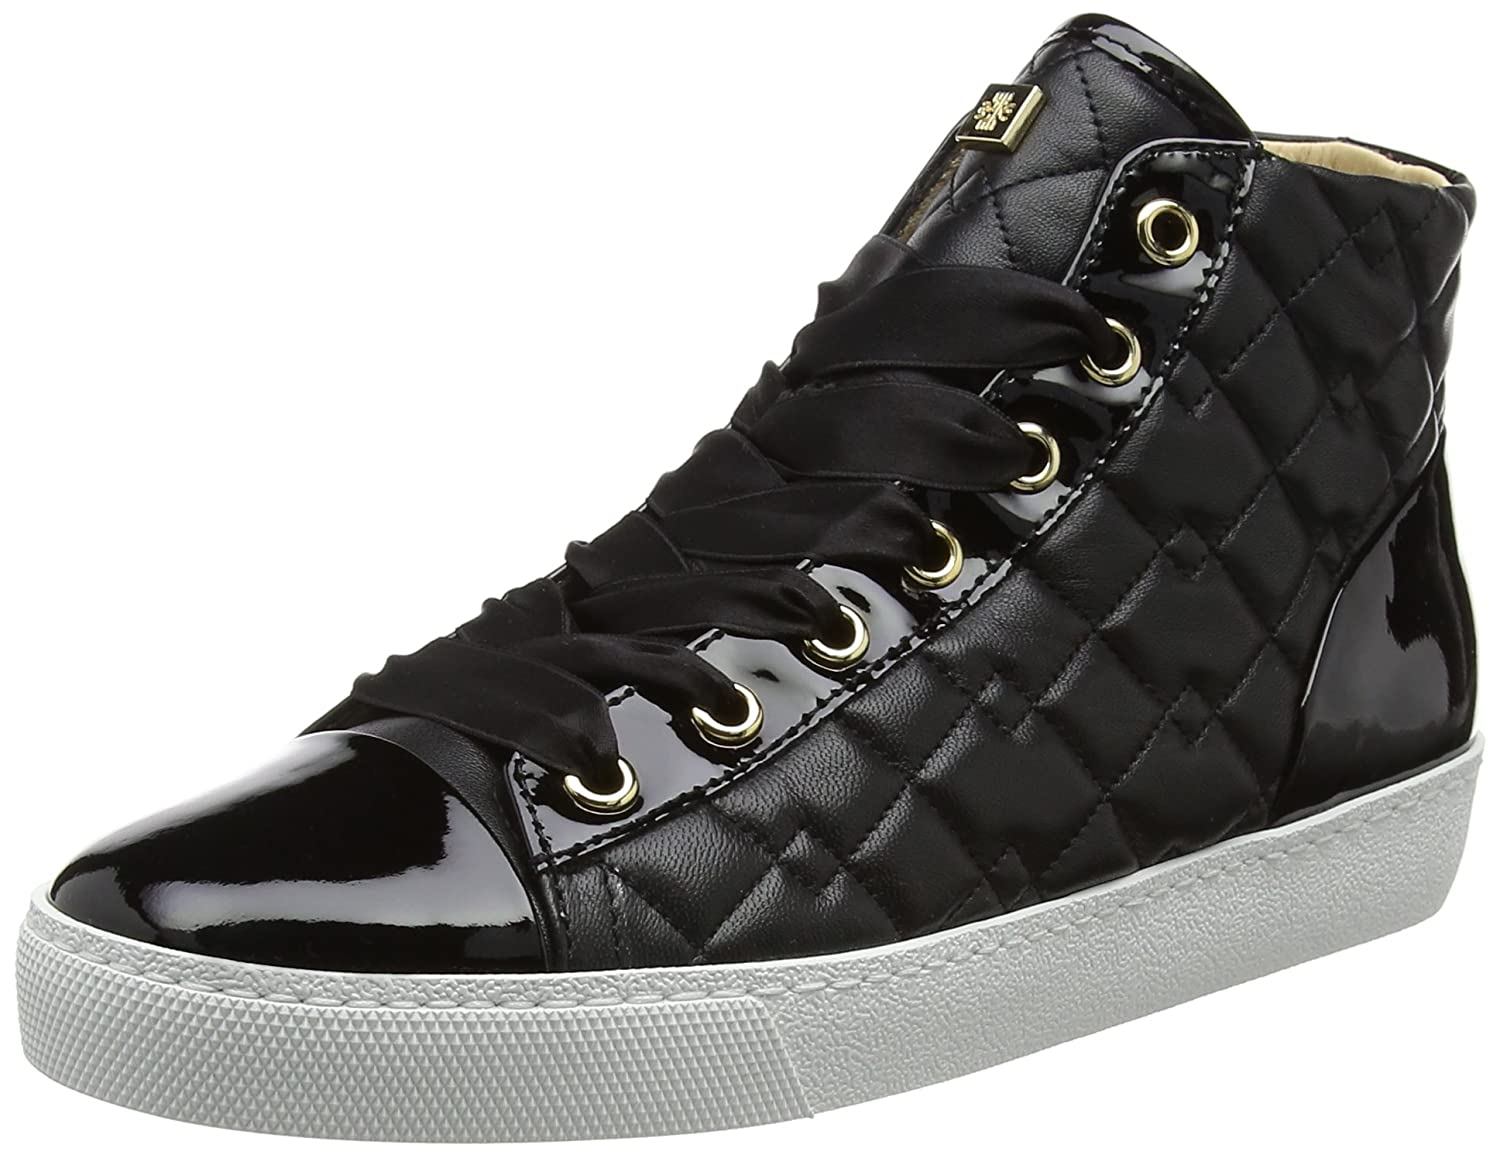 5 UK H/ÖGL Women/'s 4-10 0360 0100 Hi-Top Trainers Black